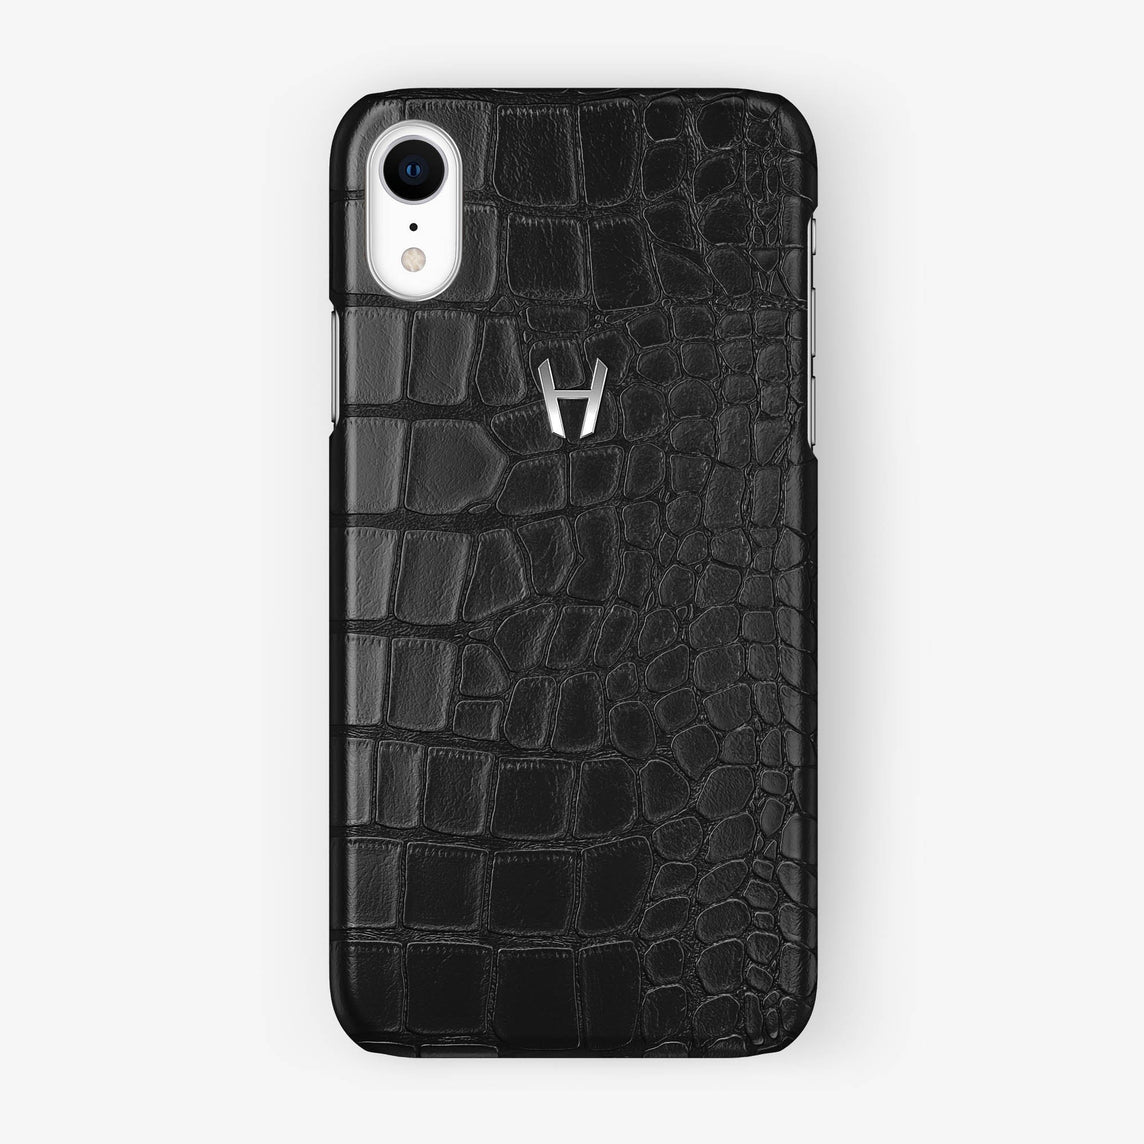 Alligator [iPhone Case] [model:iphone-xr-case] [colour:black] [finishing:stainless-steel]